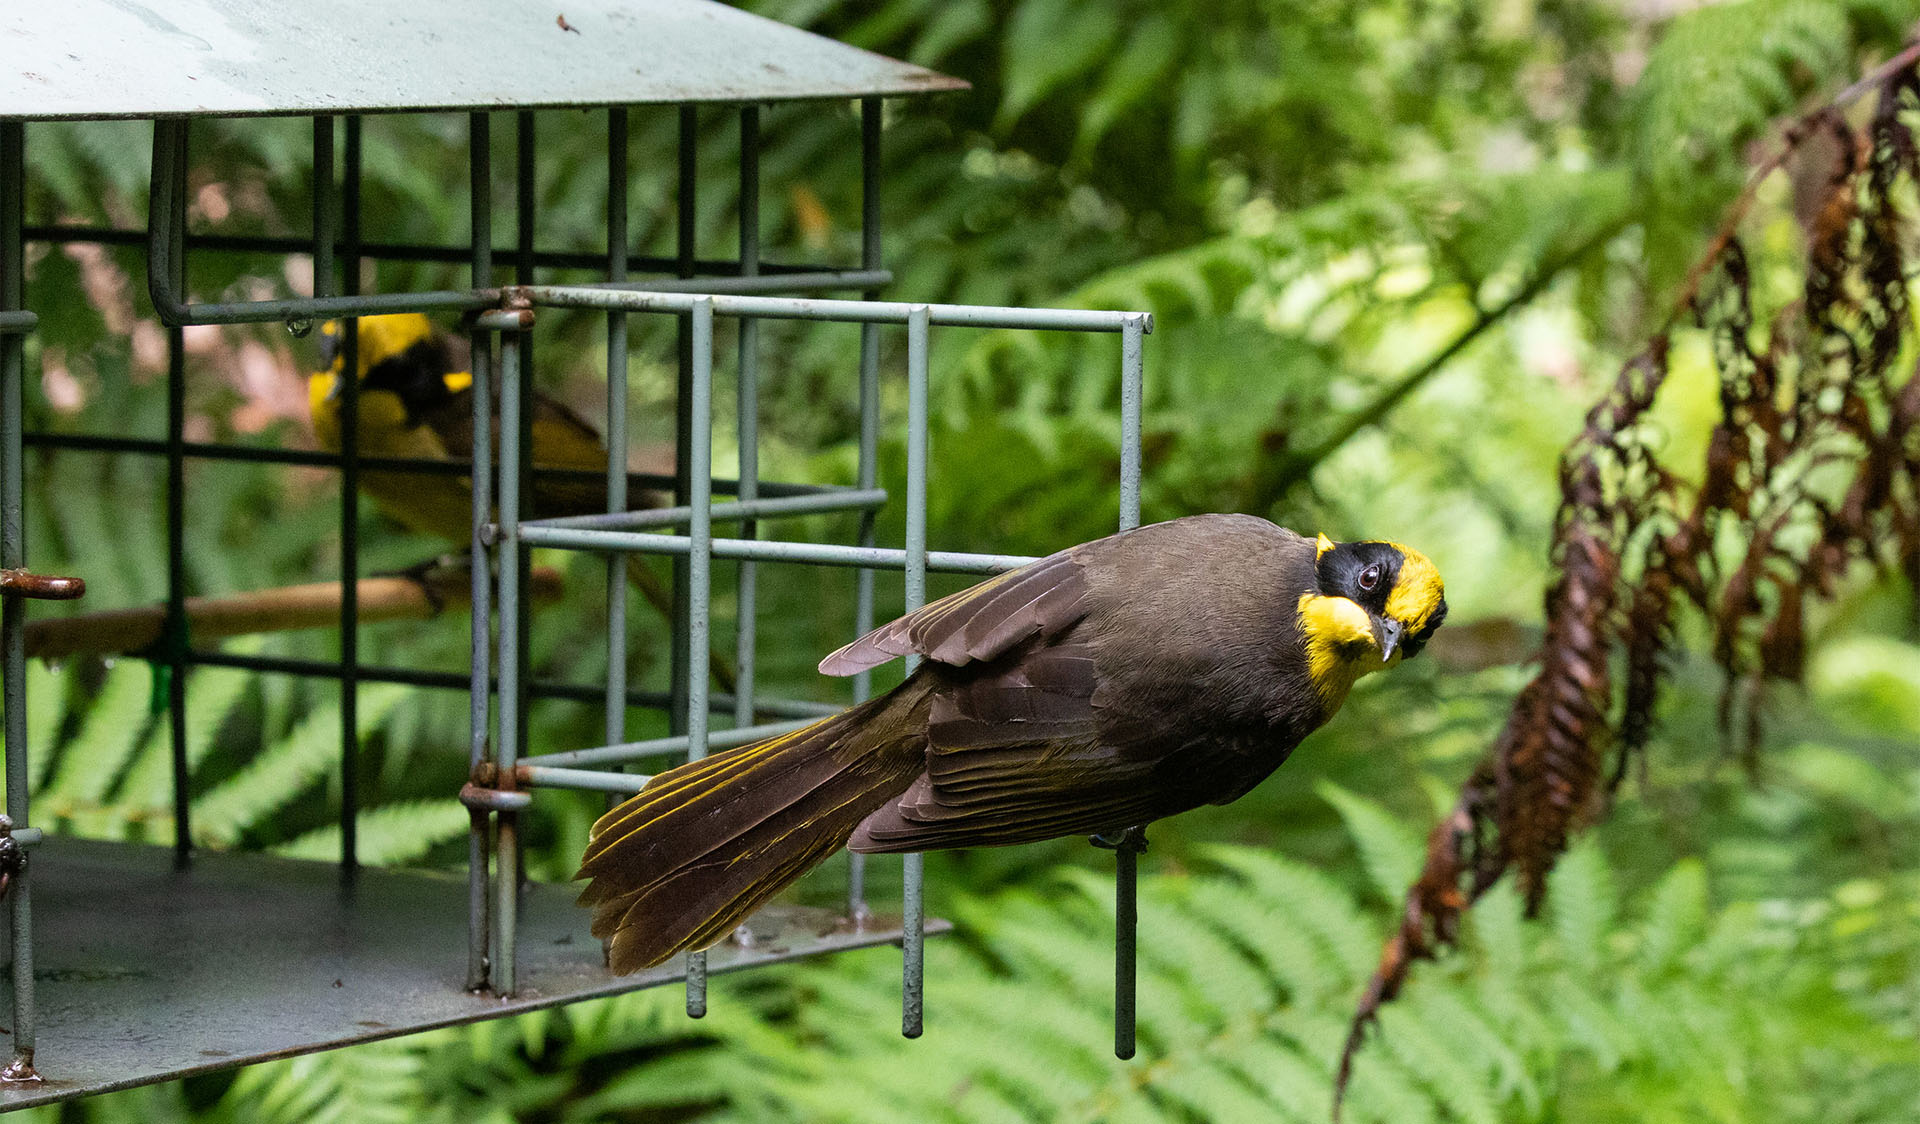 Helmeted Honeyeater at feeding station (photo credit: Marcia Riederer)